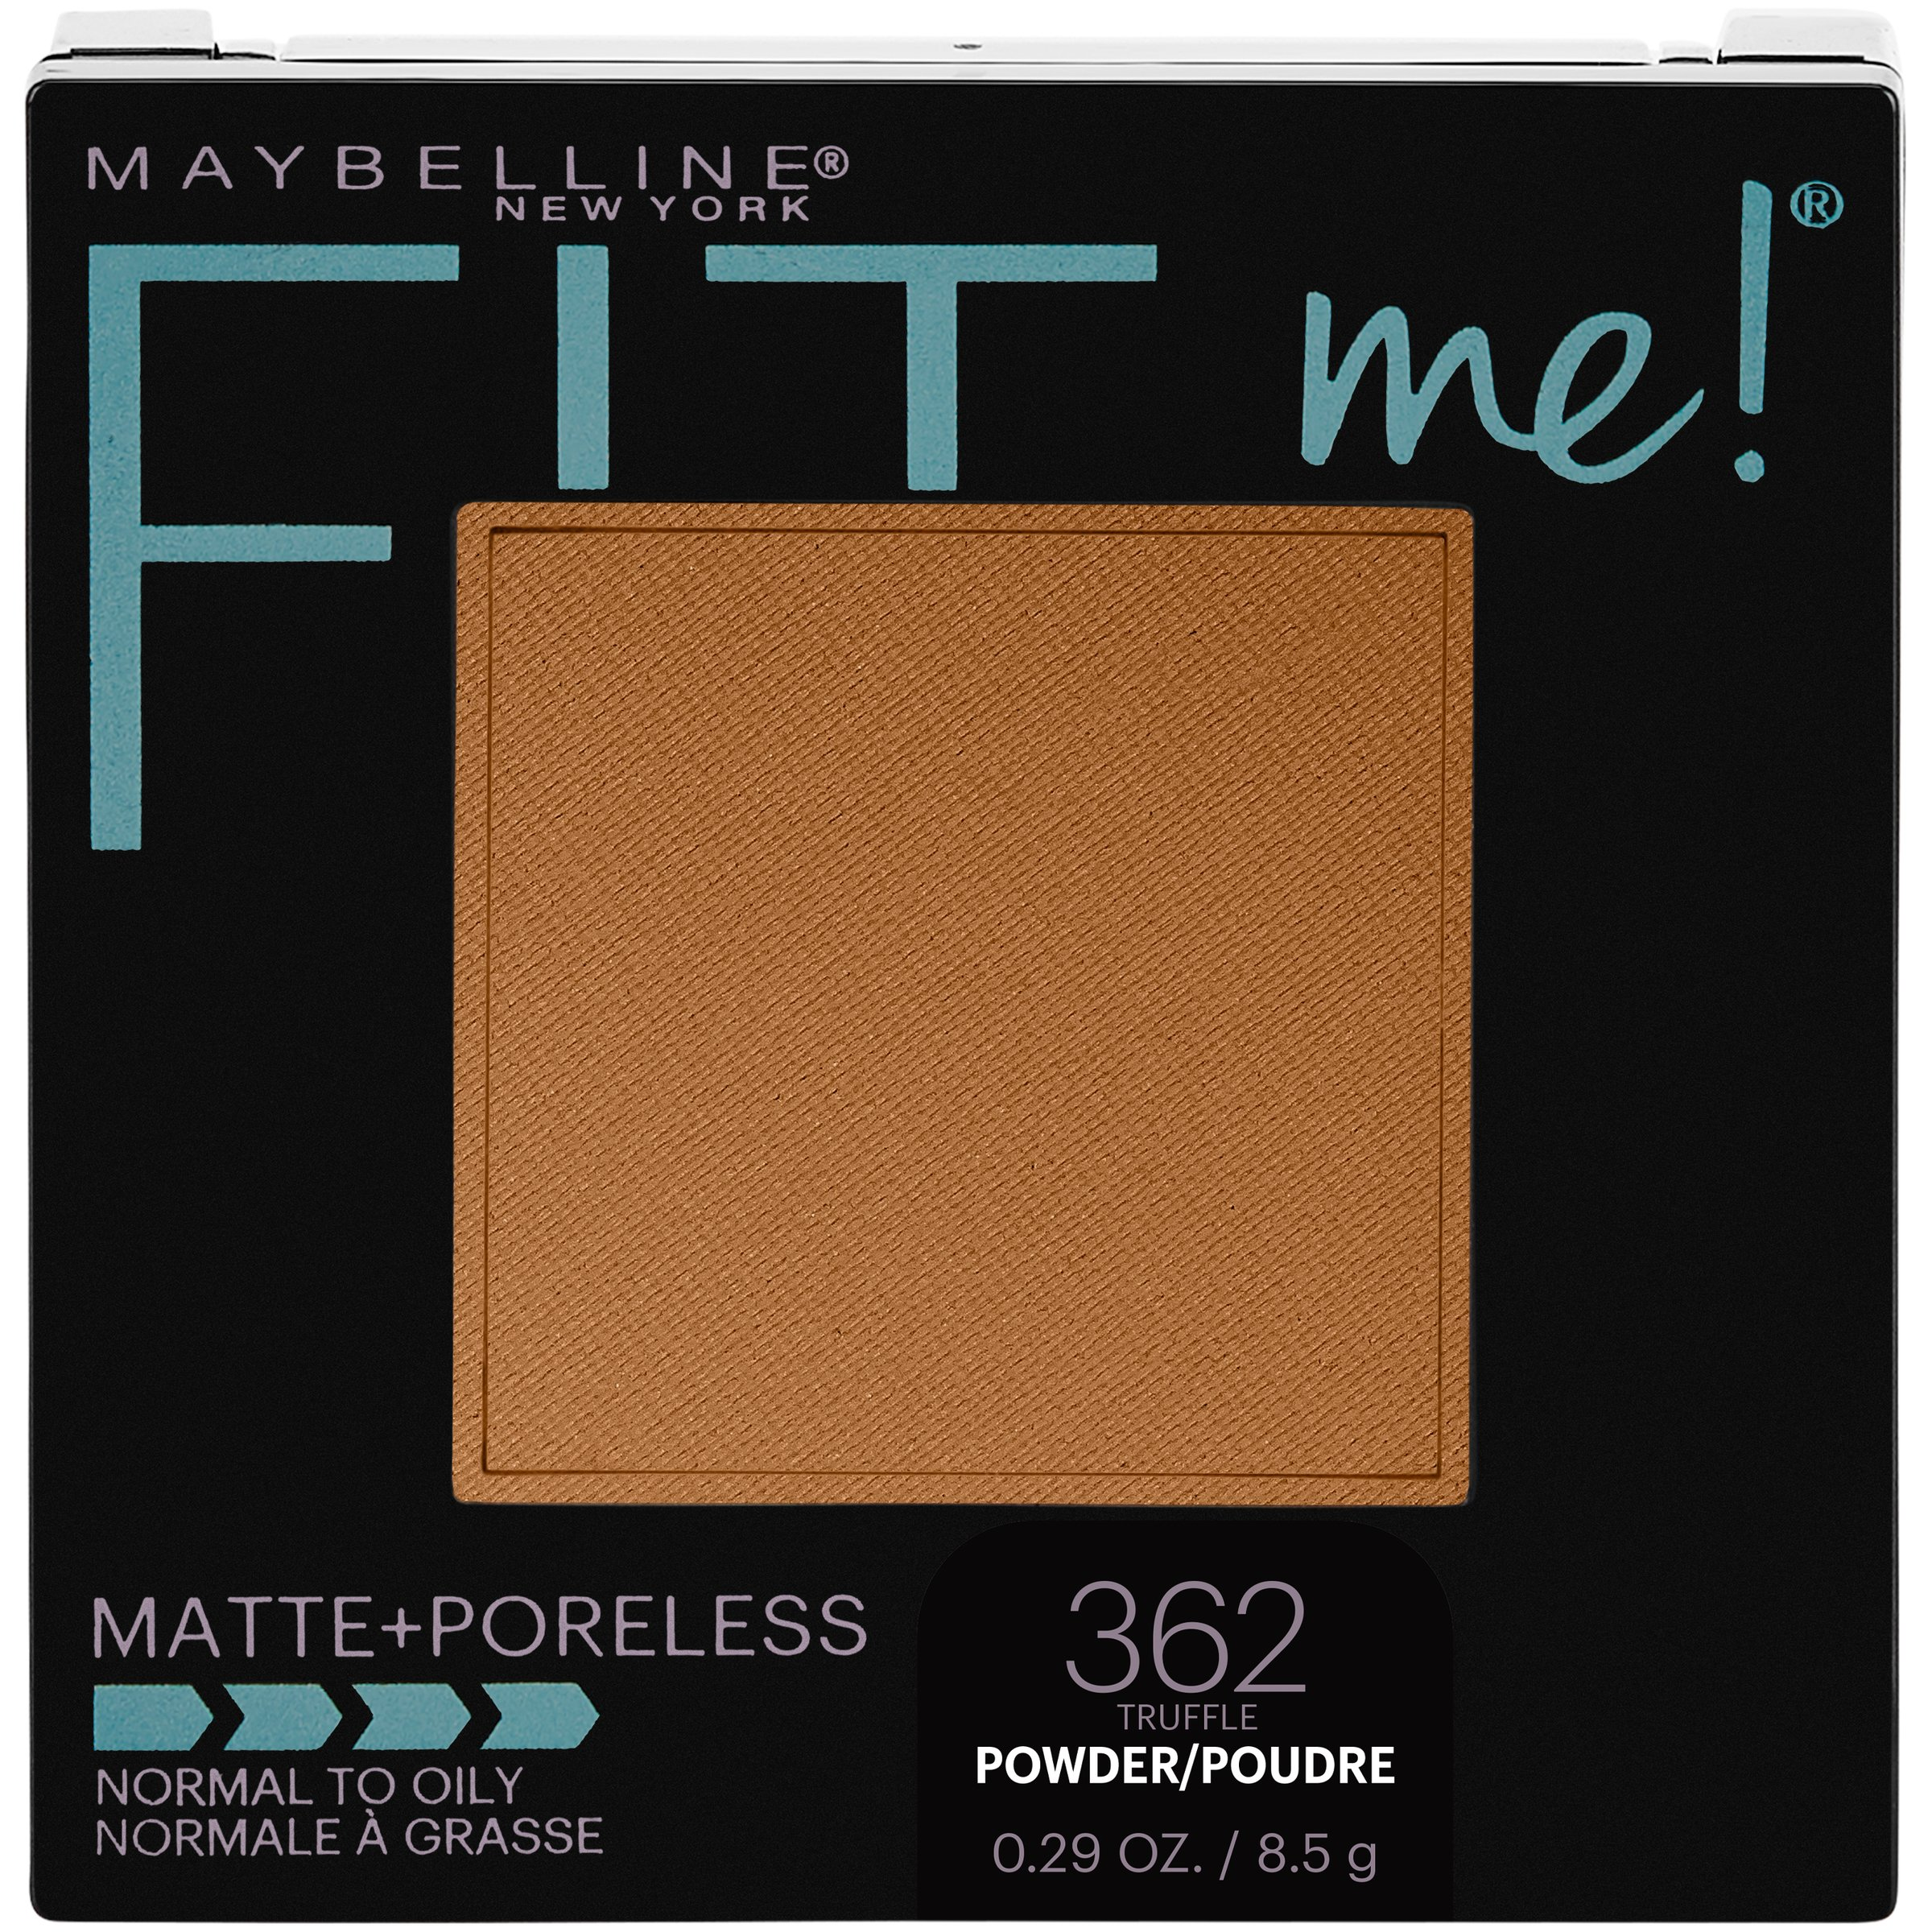 Maybelline New York Fit Me Matte + Poreless Pressed Face Powder Makeup, Truffle, 0.28 Ounce, Pack of 1